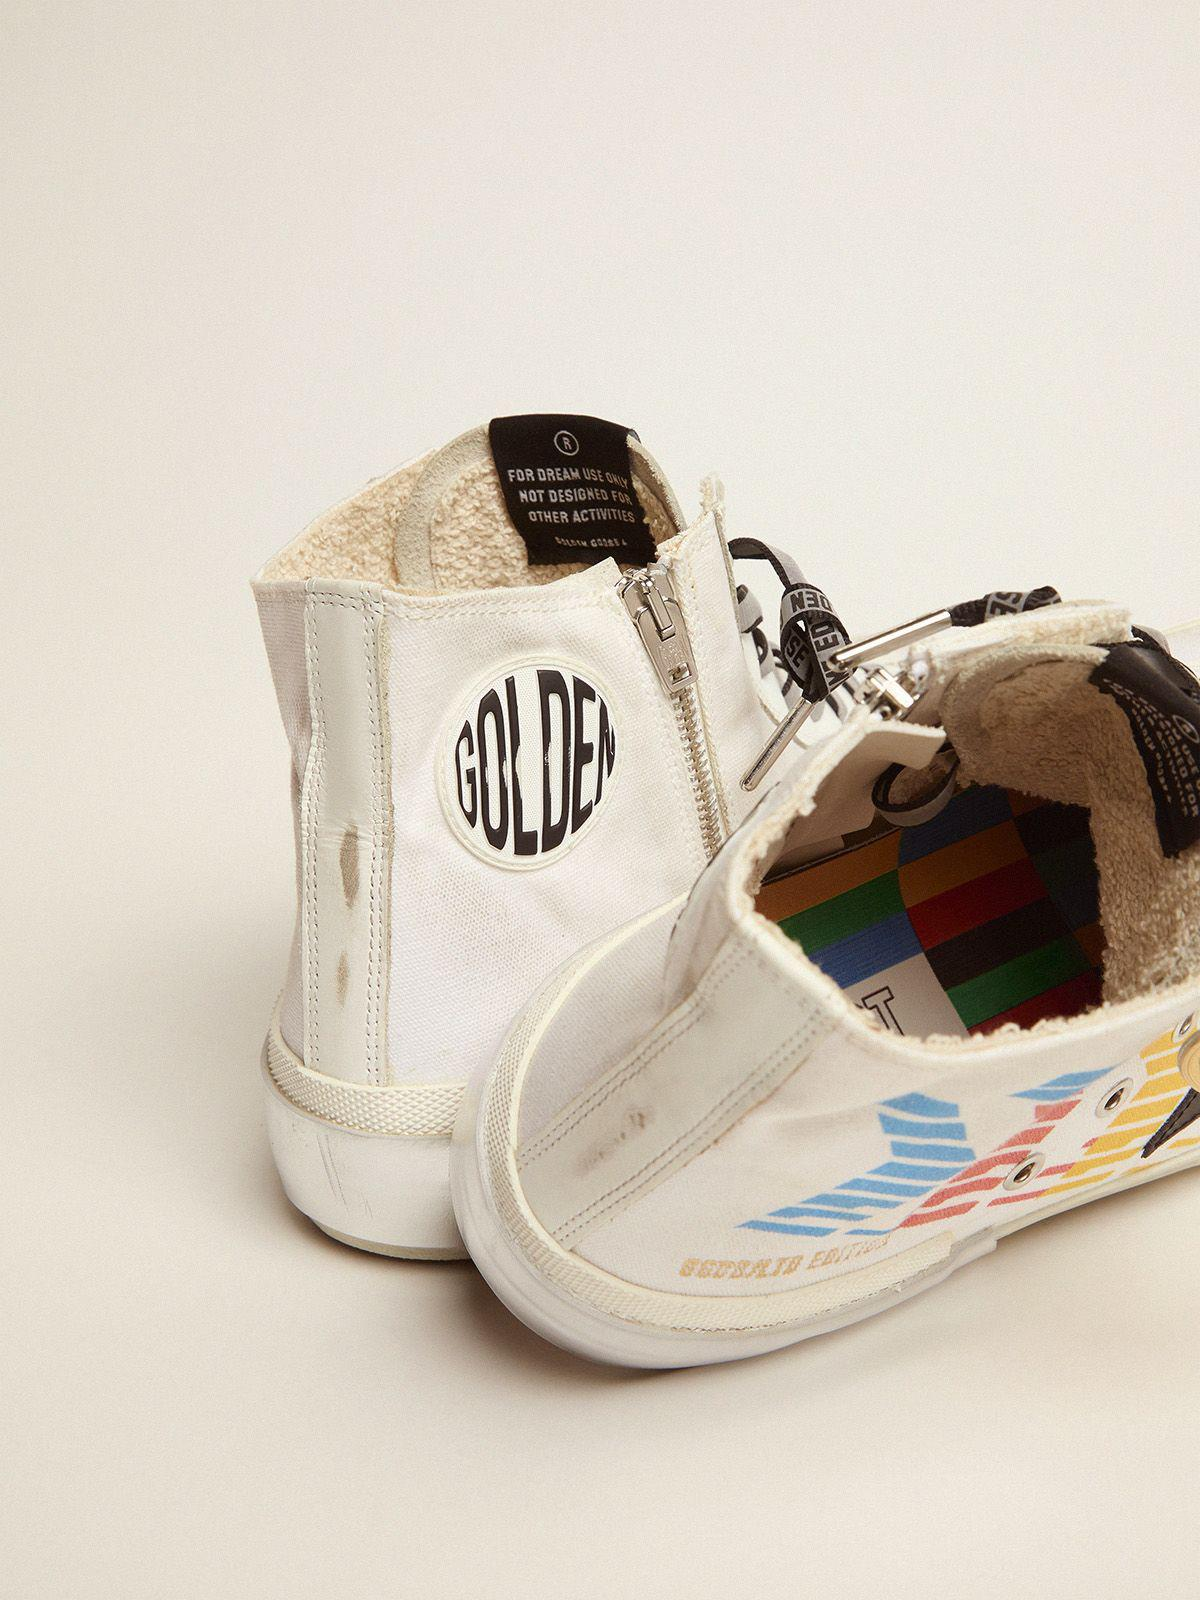 Francy Game EDT Capsule Collection sneakers with white canvas upper and multicolored screen print 3